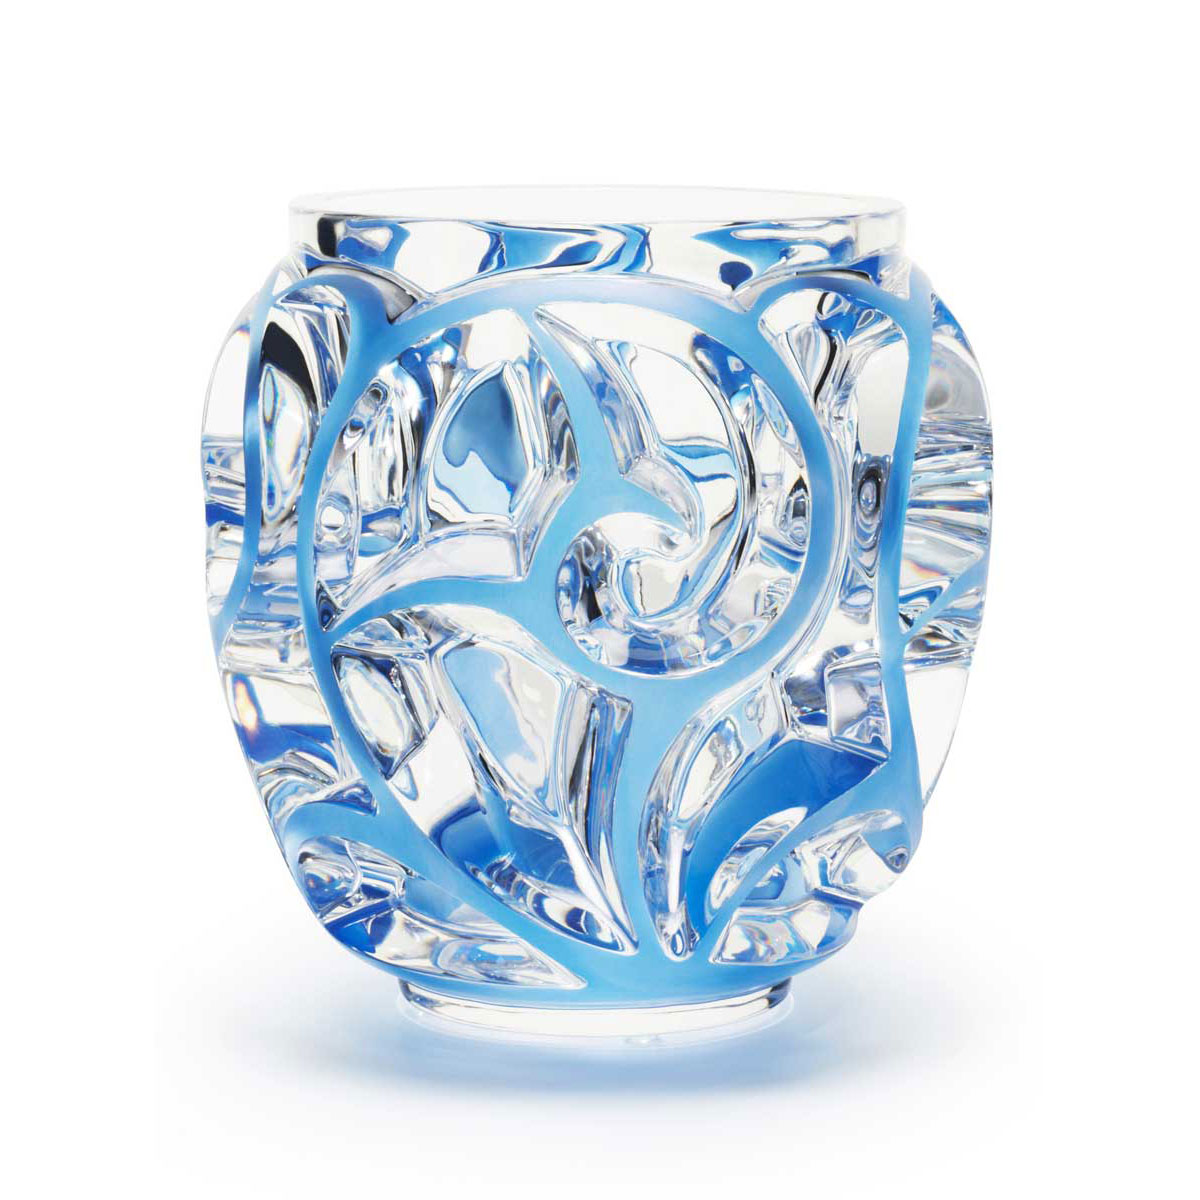 "Lalique Tourbillons XXL Blue 10.5"" Vase, Limited Edition"